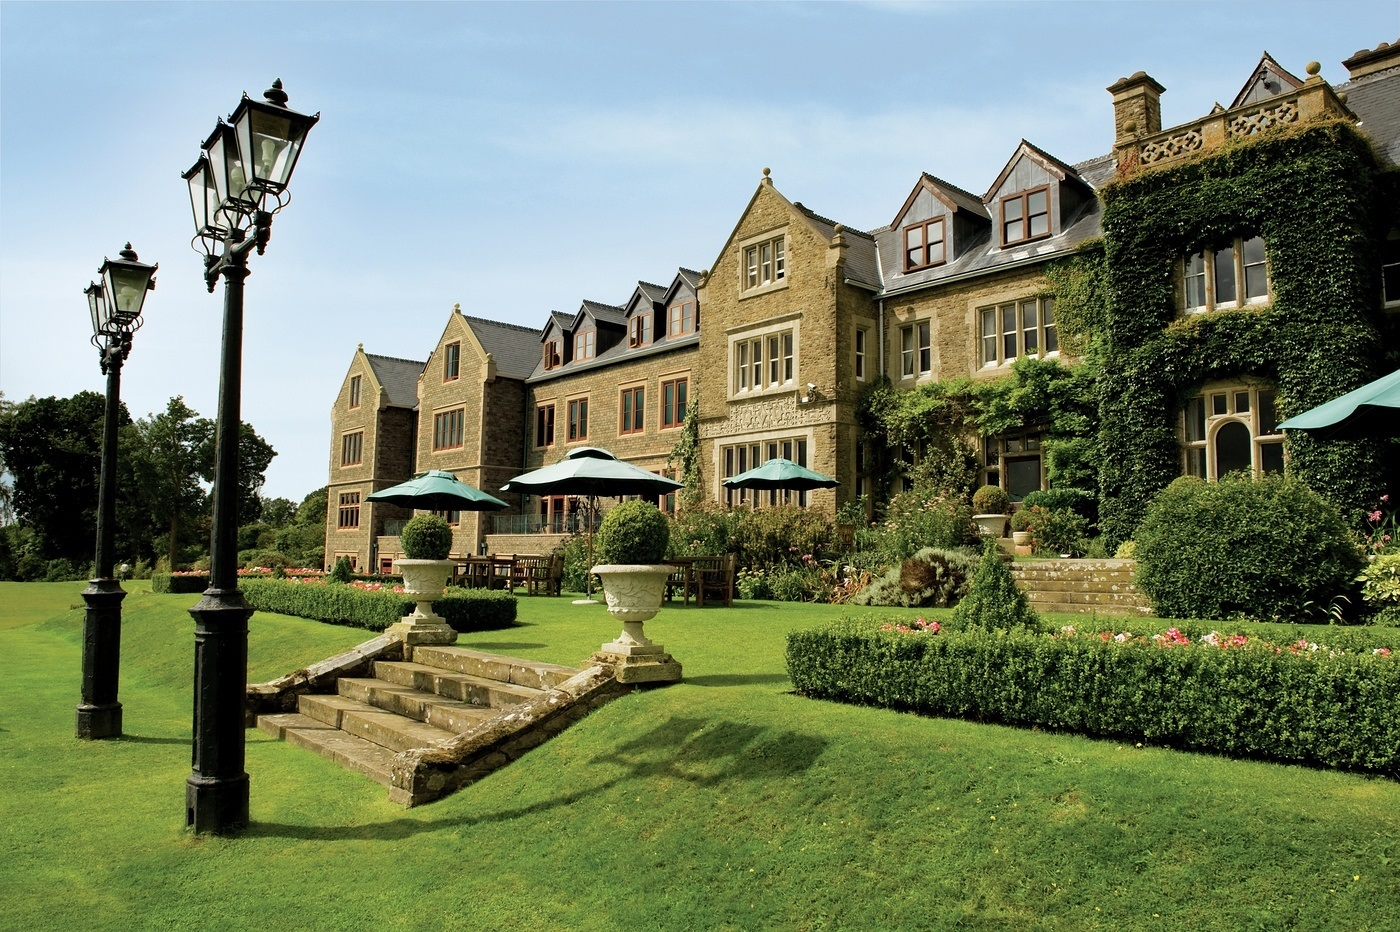 THE SOUTH LODGE HOTEL HORSHAM HOTEL REVIEW